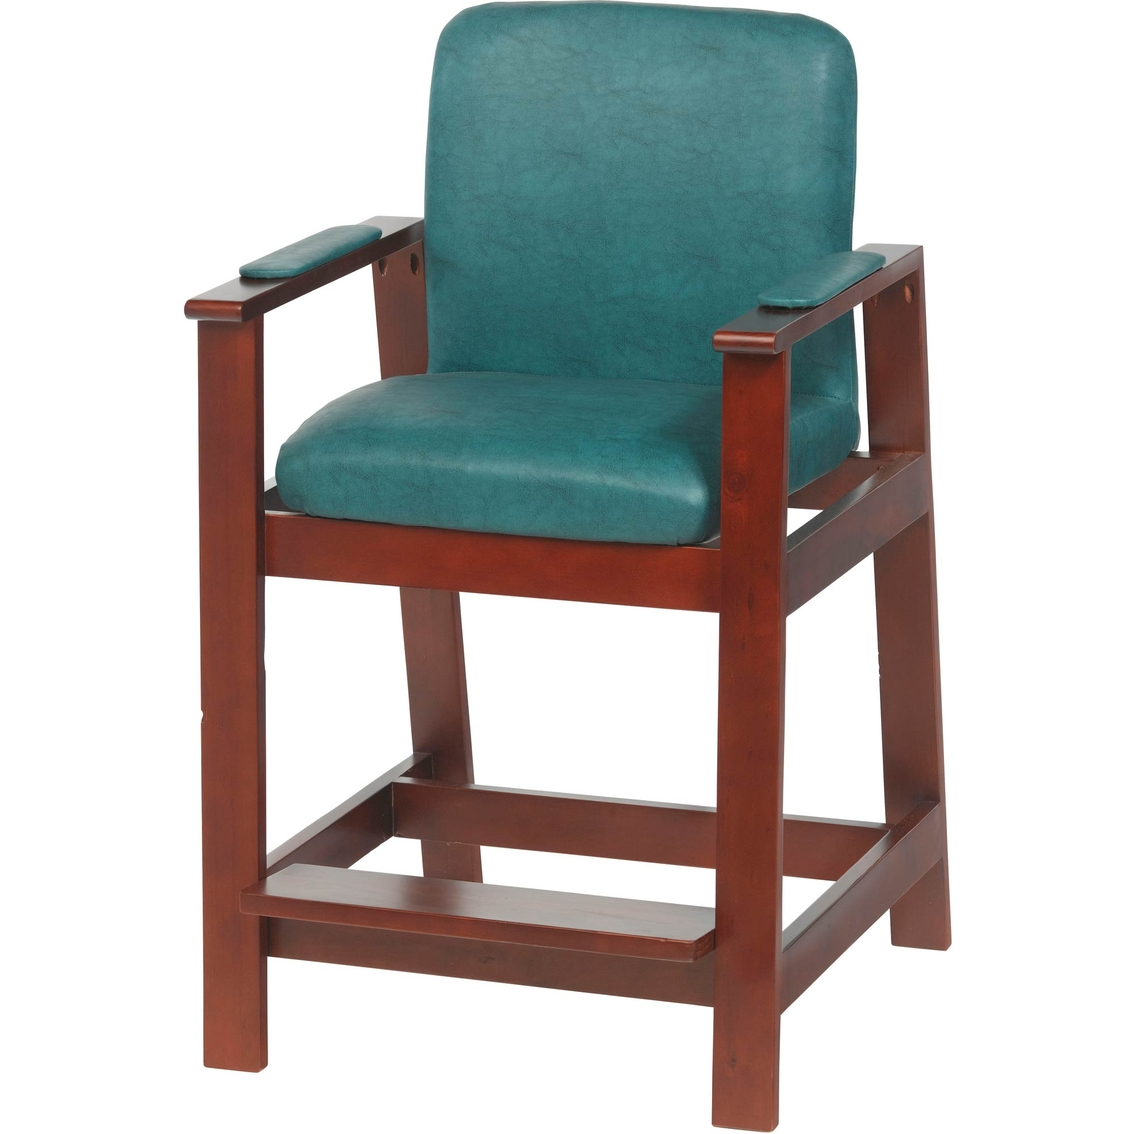 medical chair lift modern white drive wooden high hip chairs beauty